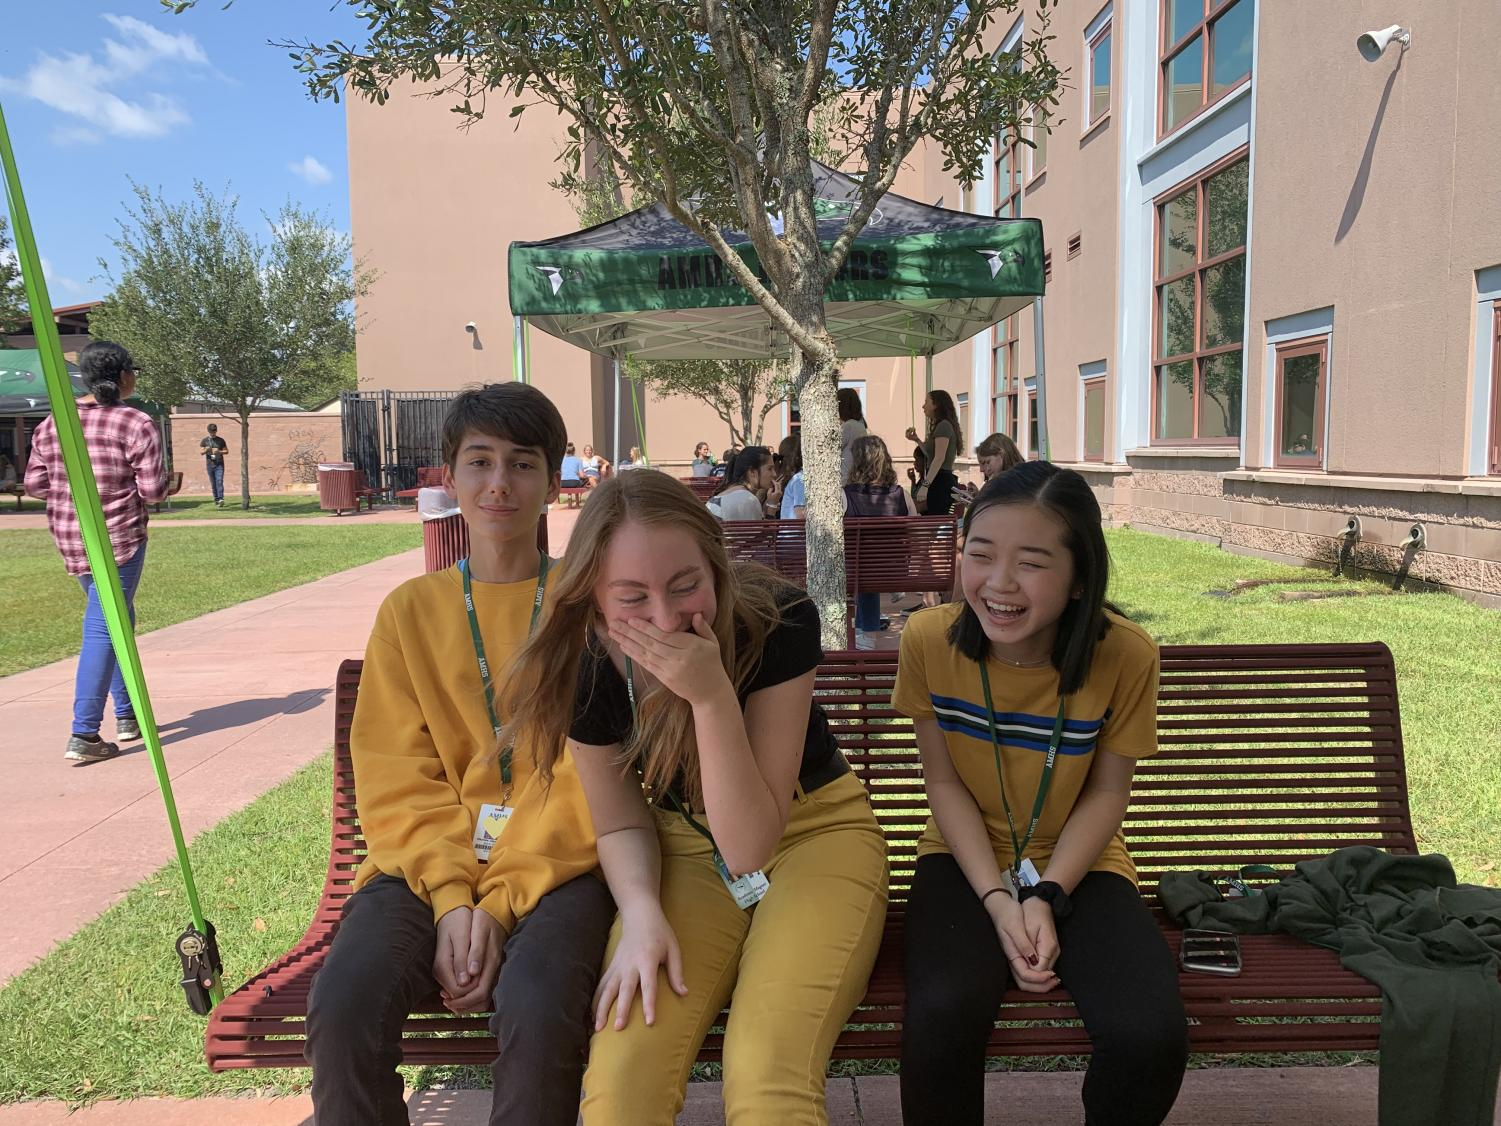 (From left to right) Charlie, Bailey, and Joy wearing their coordinated outfits